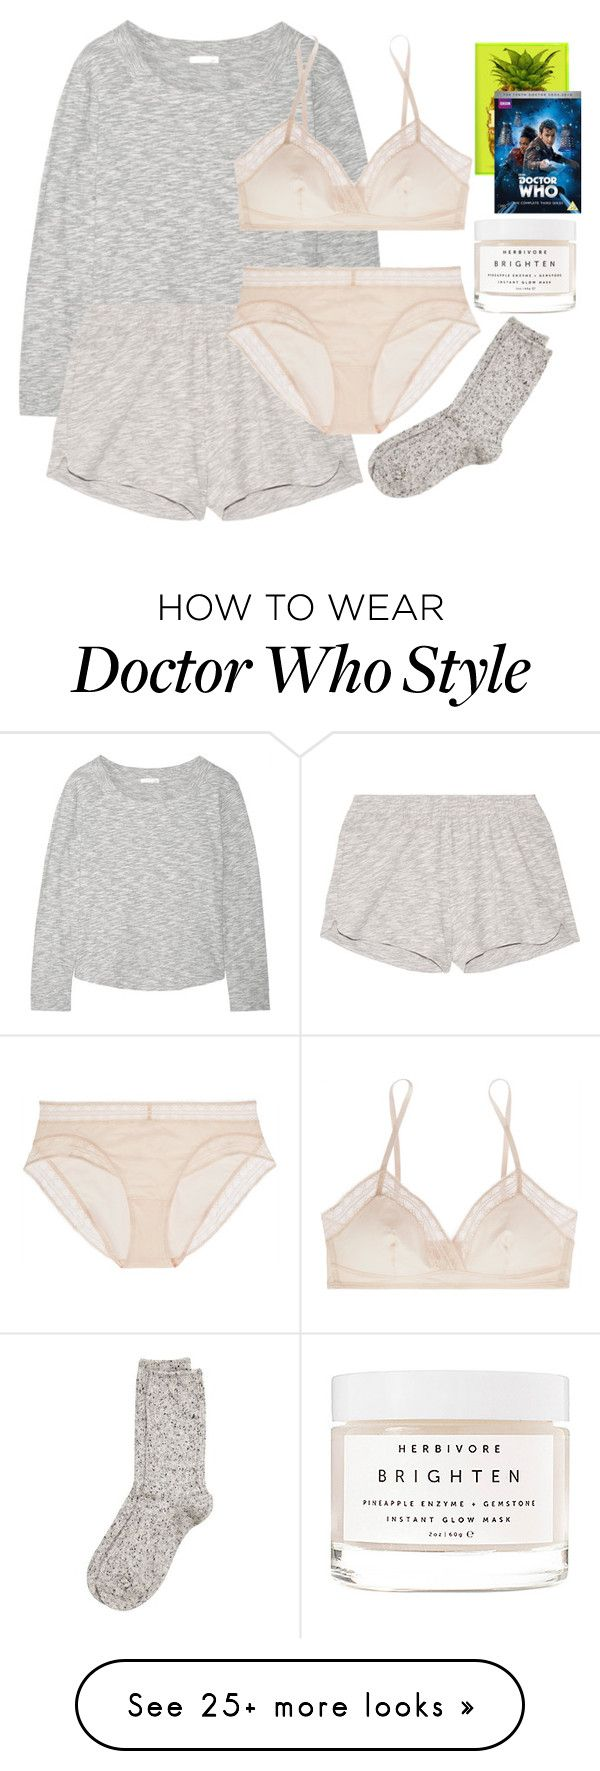 """Untitled #1124"" by poshandy on Polyvore featuring Herbivore, Skin, Eres and River Island"